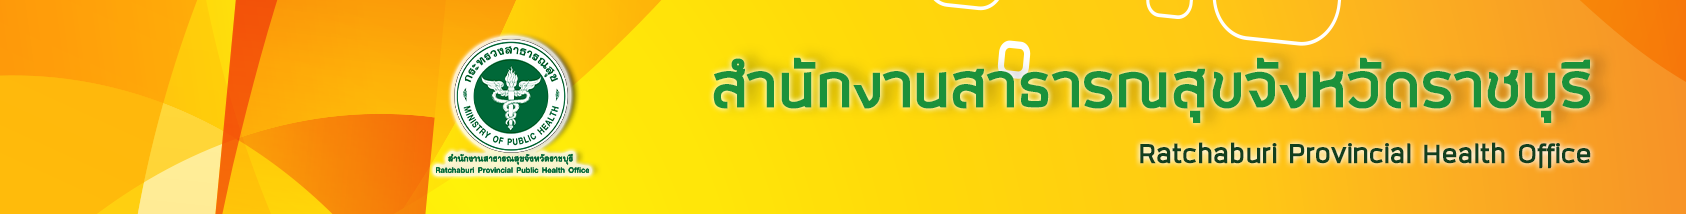 Ratchaburi Provincial Health Office